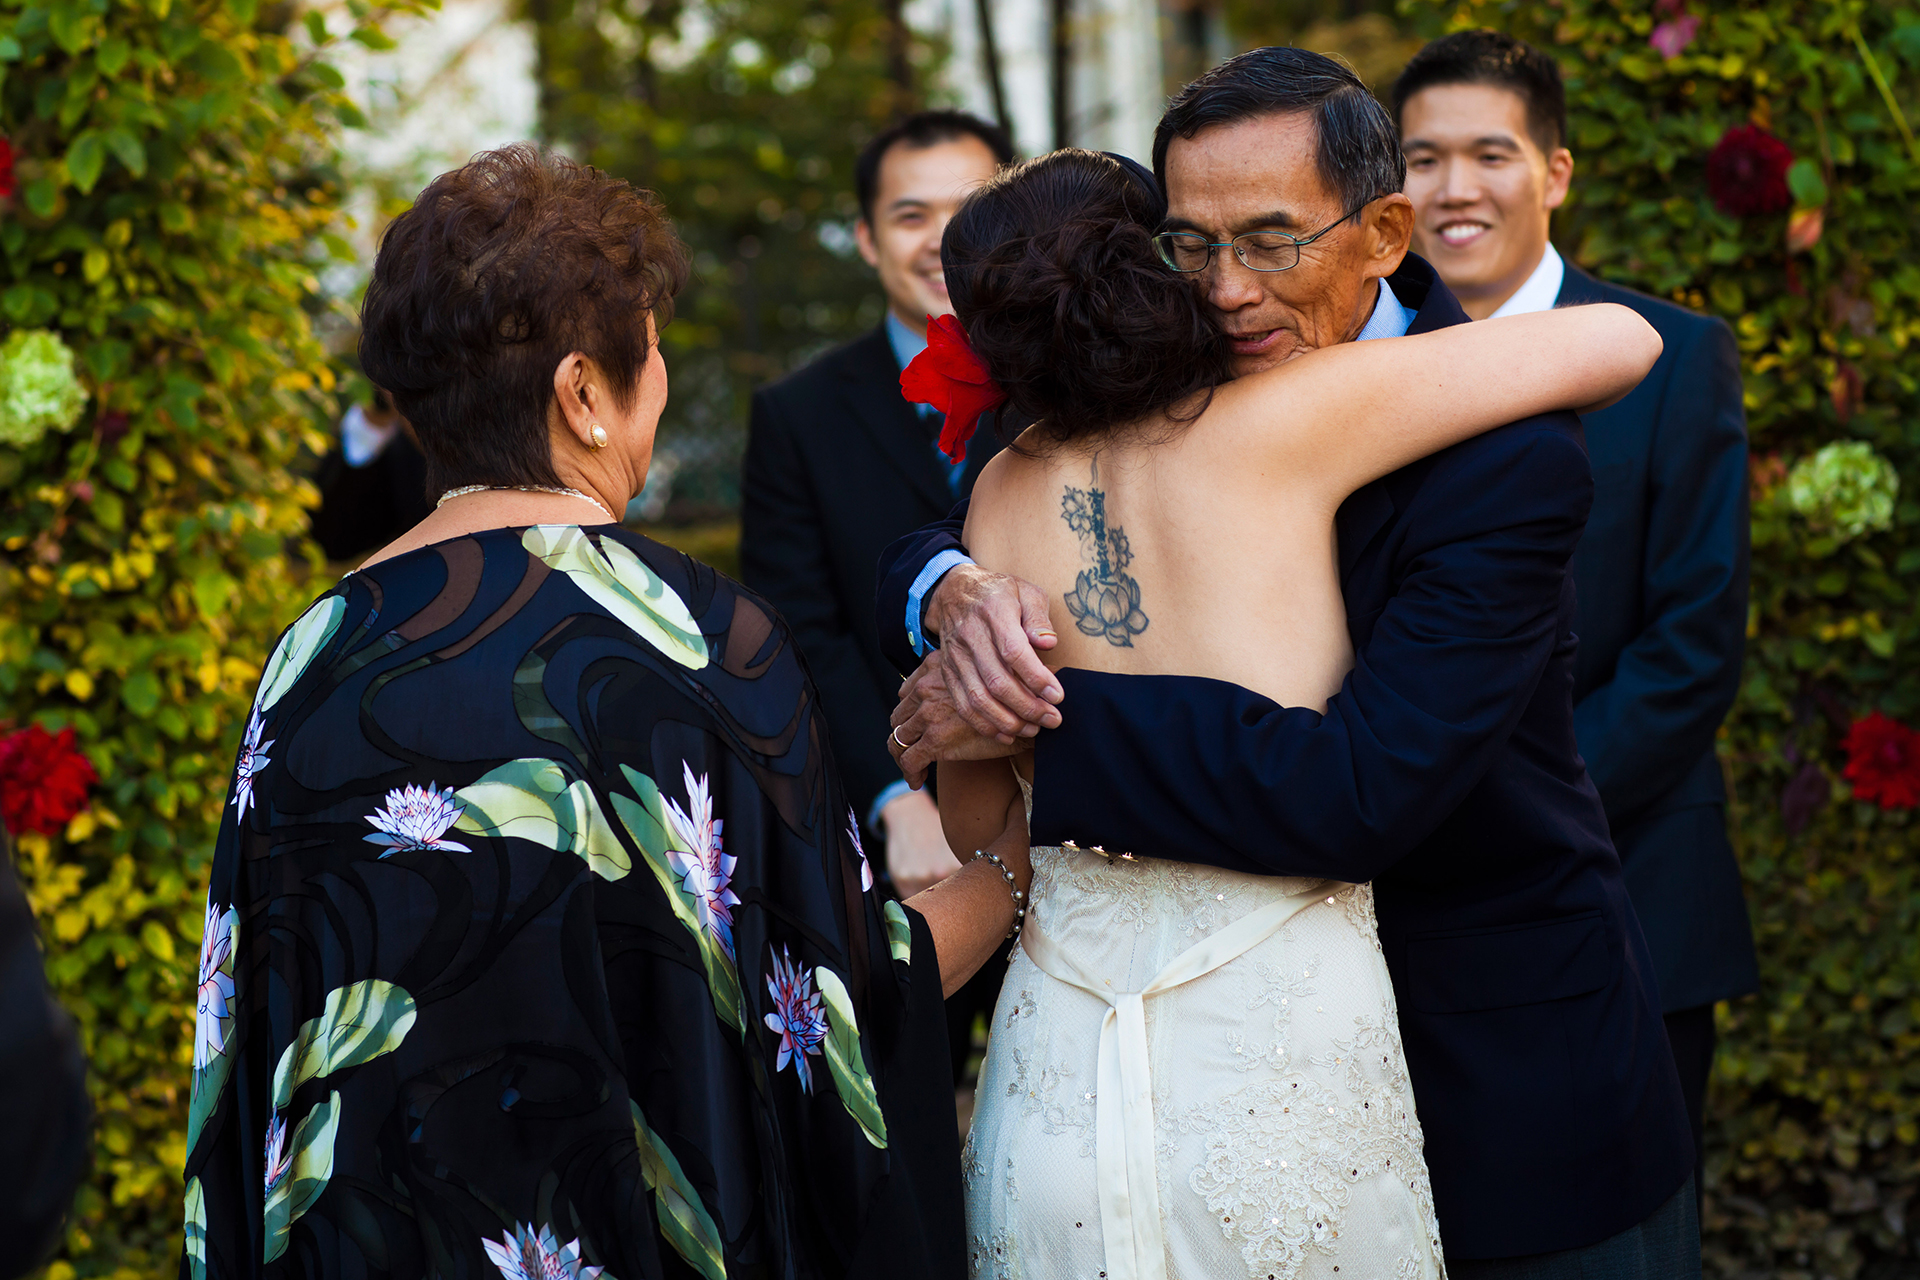 France Outdoor Elopement Ceremony Photography | the bride at the altar with her future husband